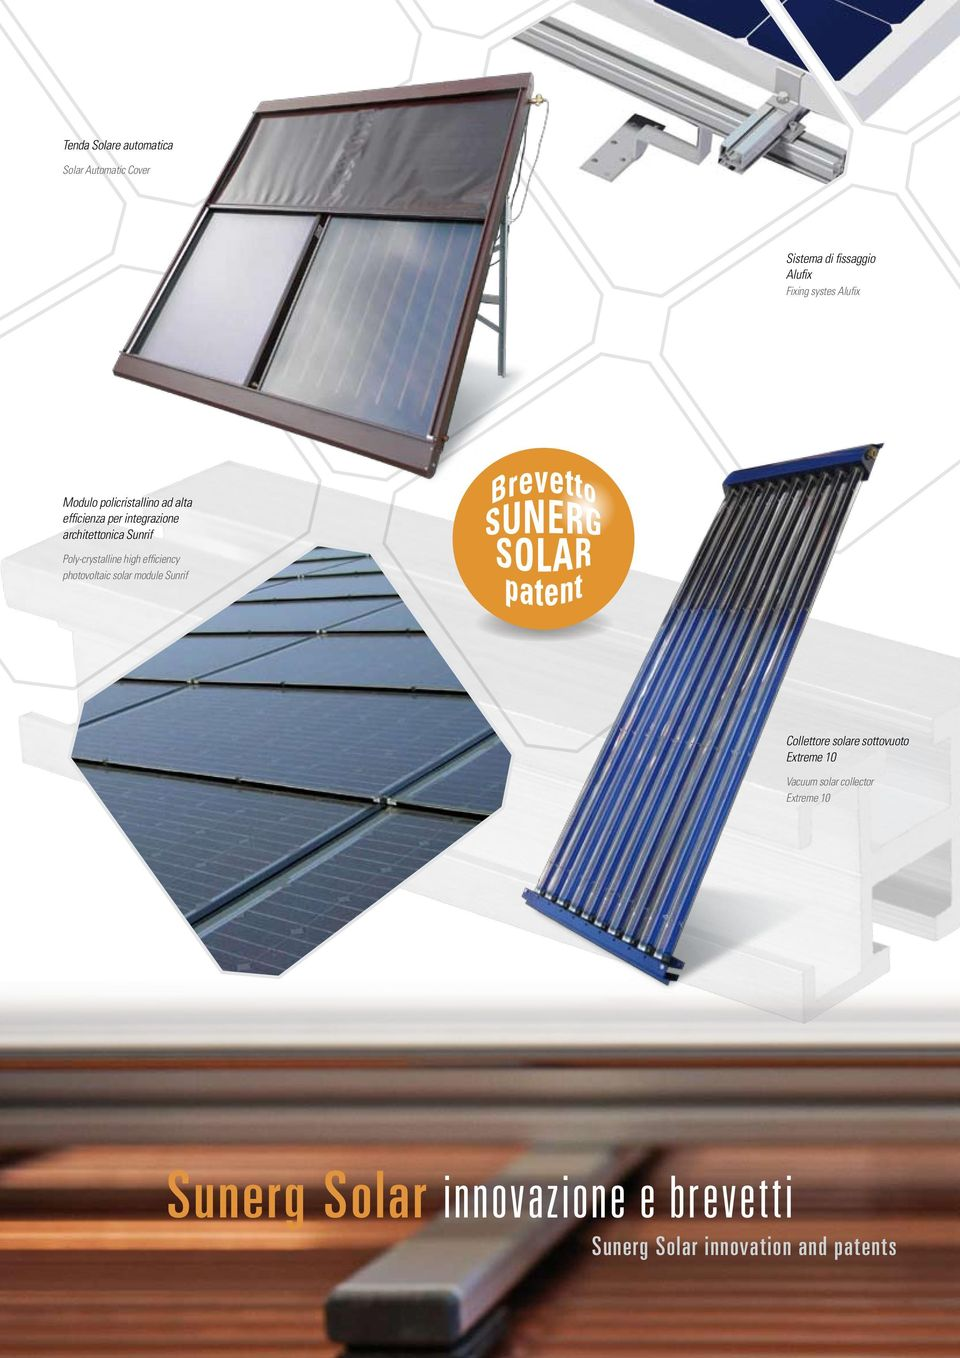 Poly-crystalline high efficiency photovoltaic solar module Sunrif Collettore solare sottovuoto